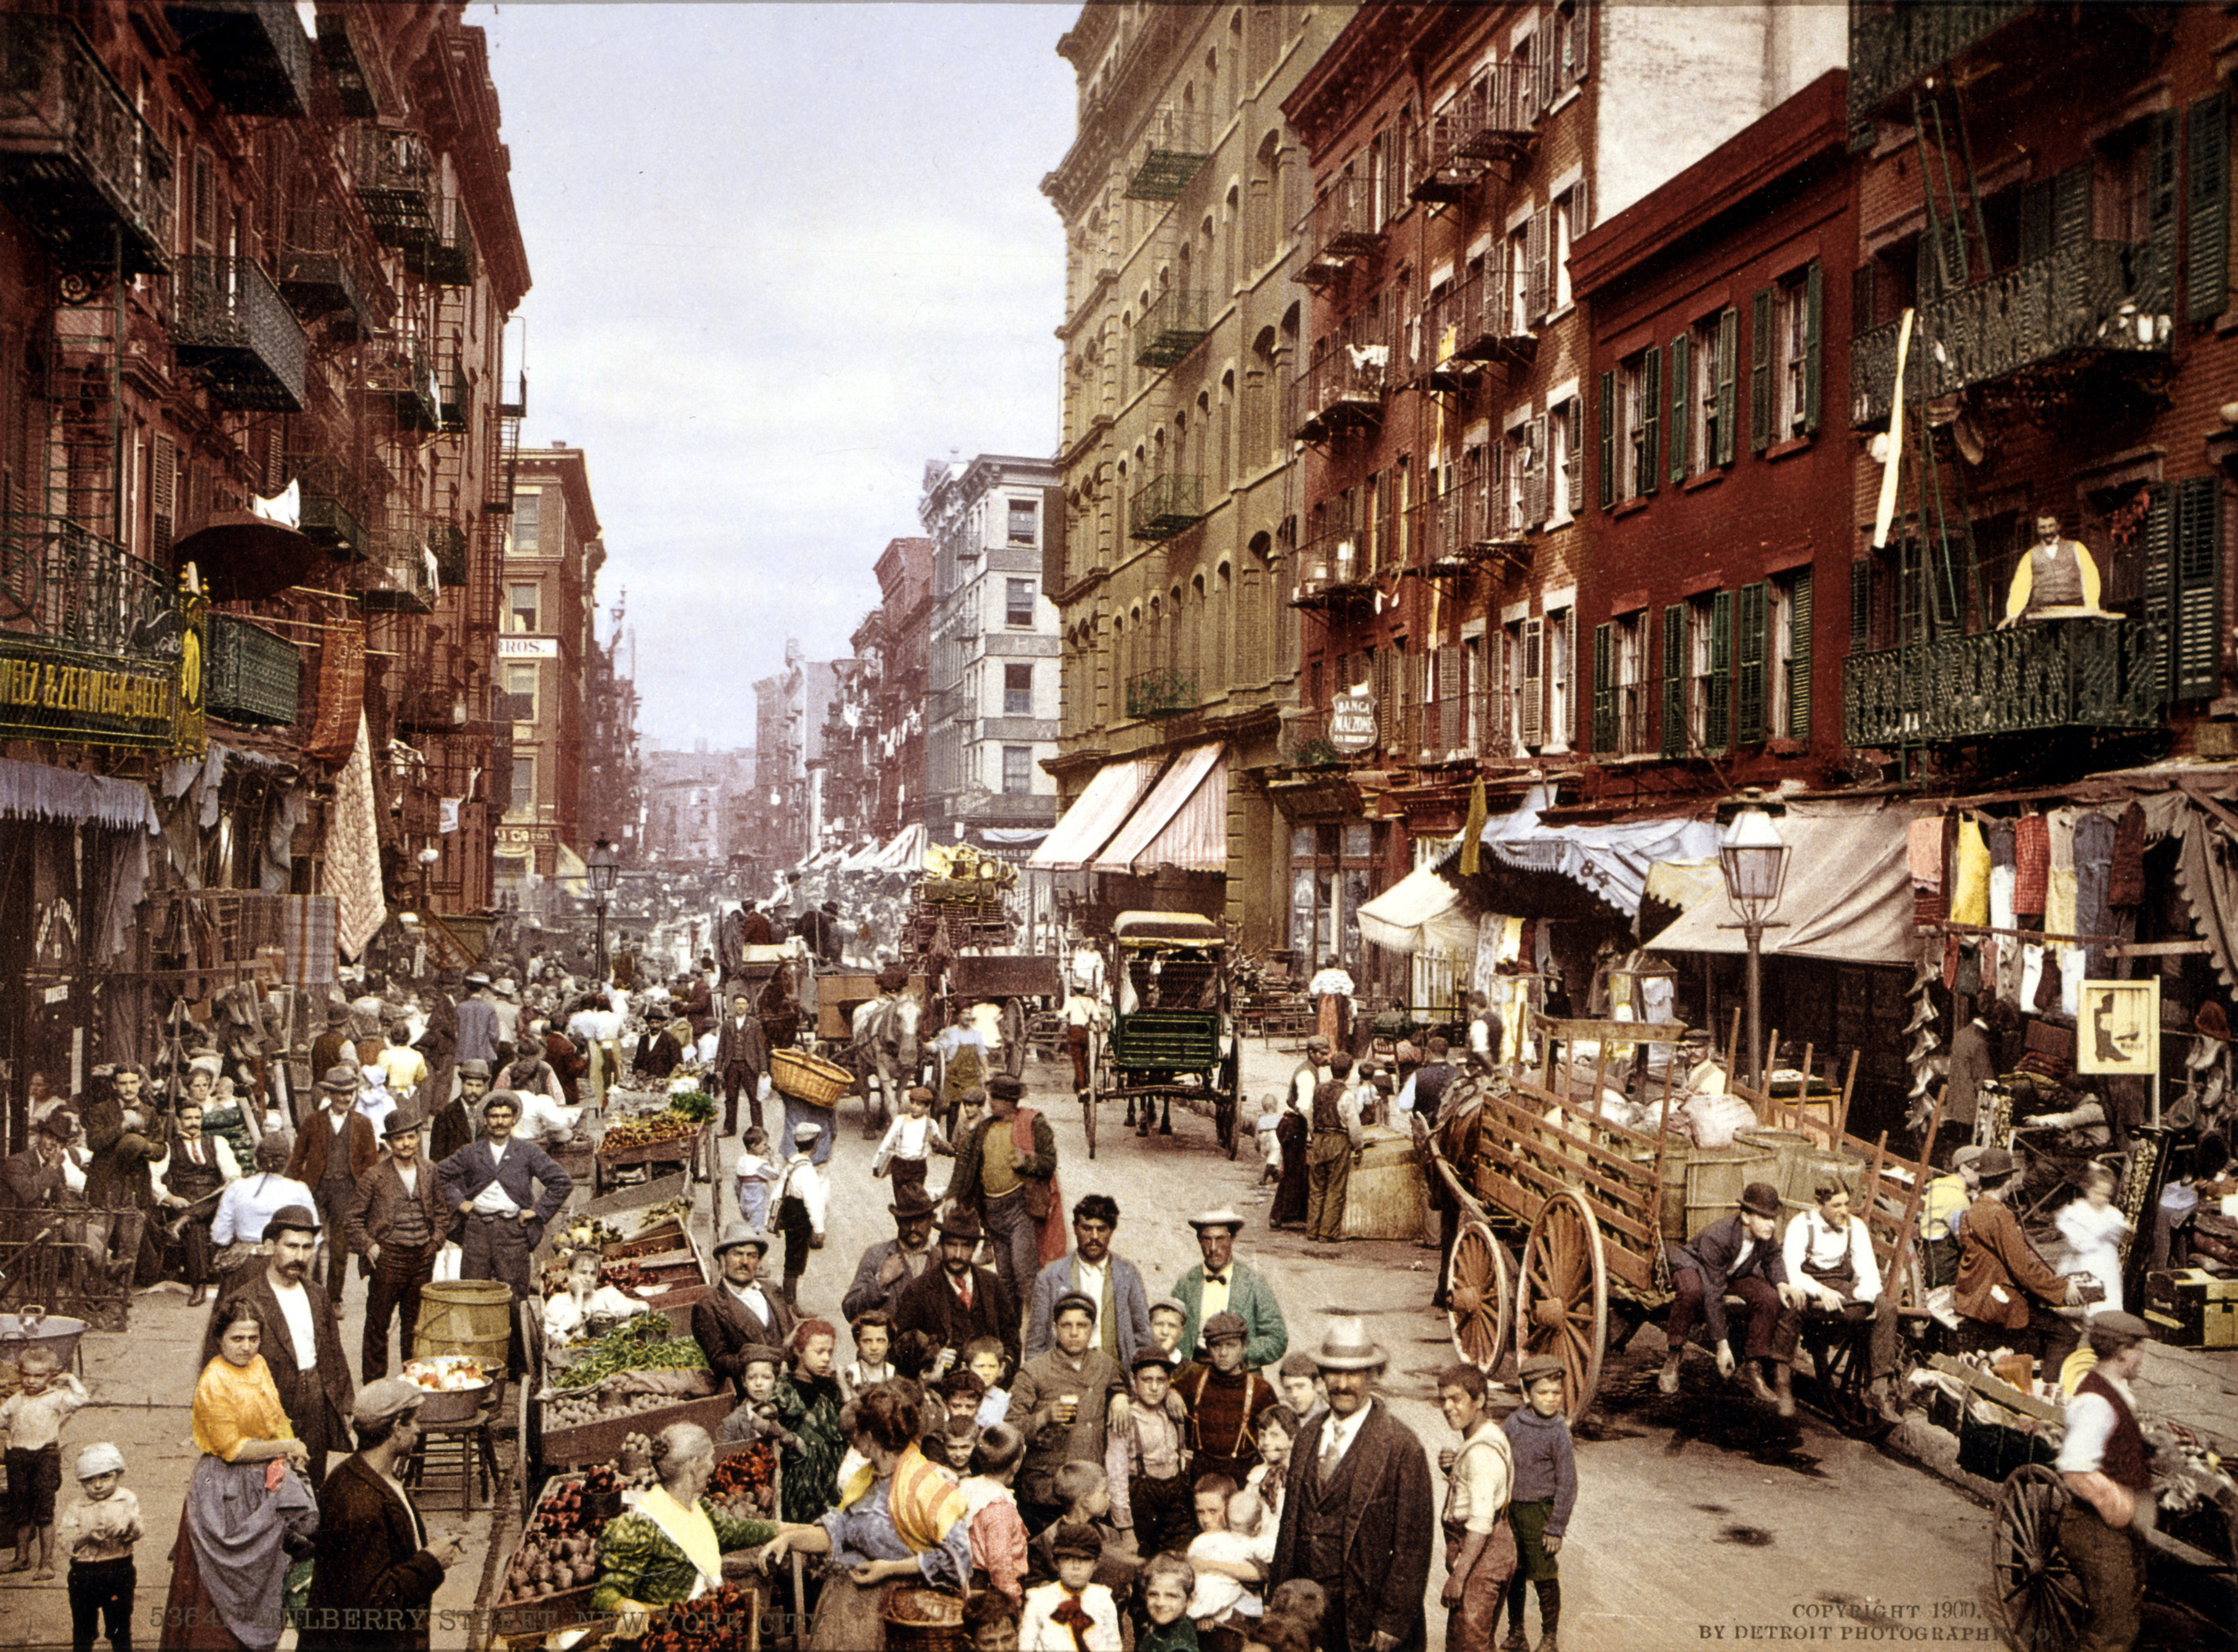 Mulberry Street, along which New York City's Little Italy is centered. Lower East Side, circa 1900. Credit: Library of Congress